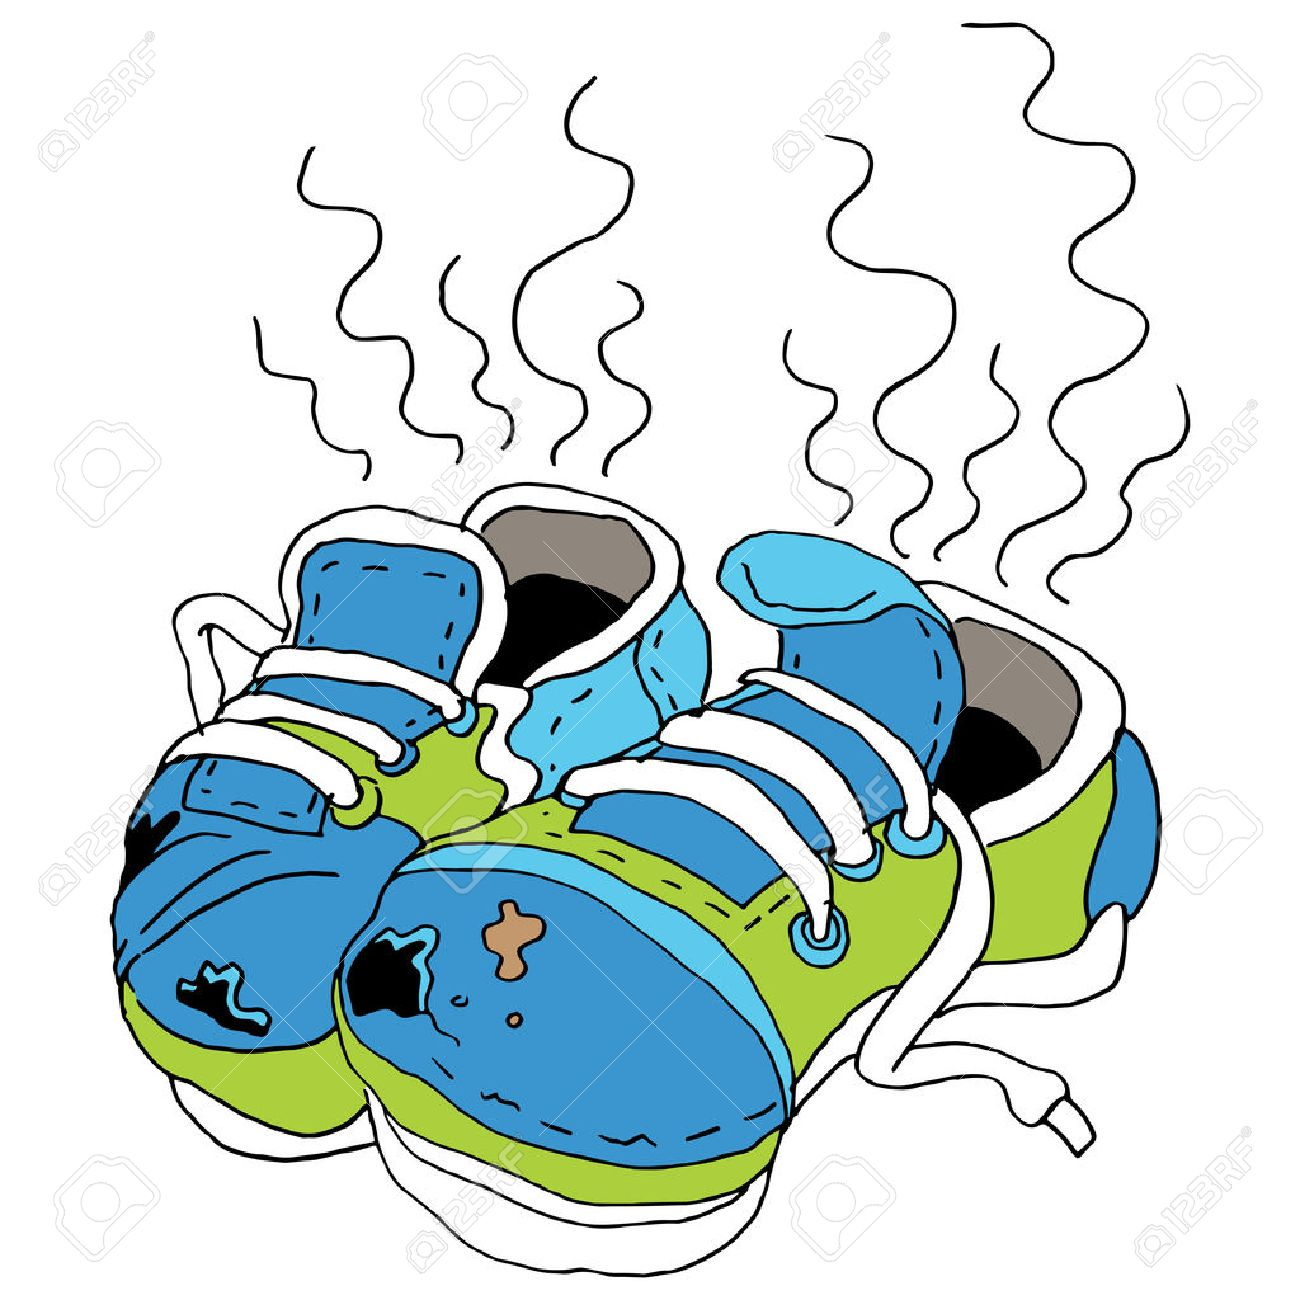 1300x1300 An Image Of Smelly Old Shoes. Royalty Free Cliparts, Vectors,